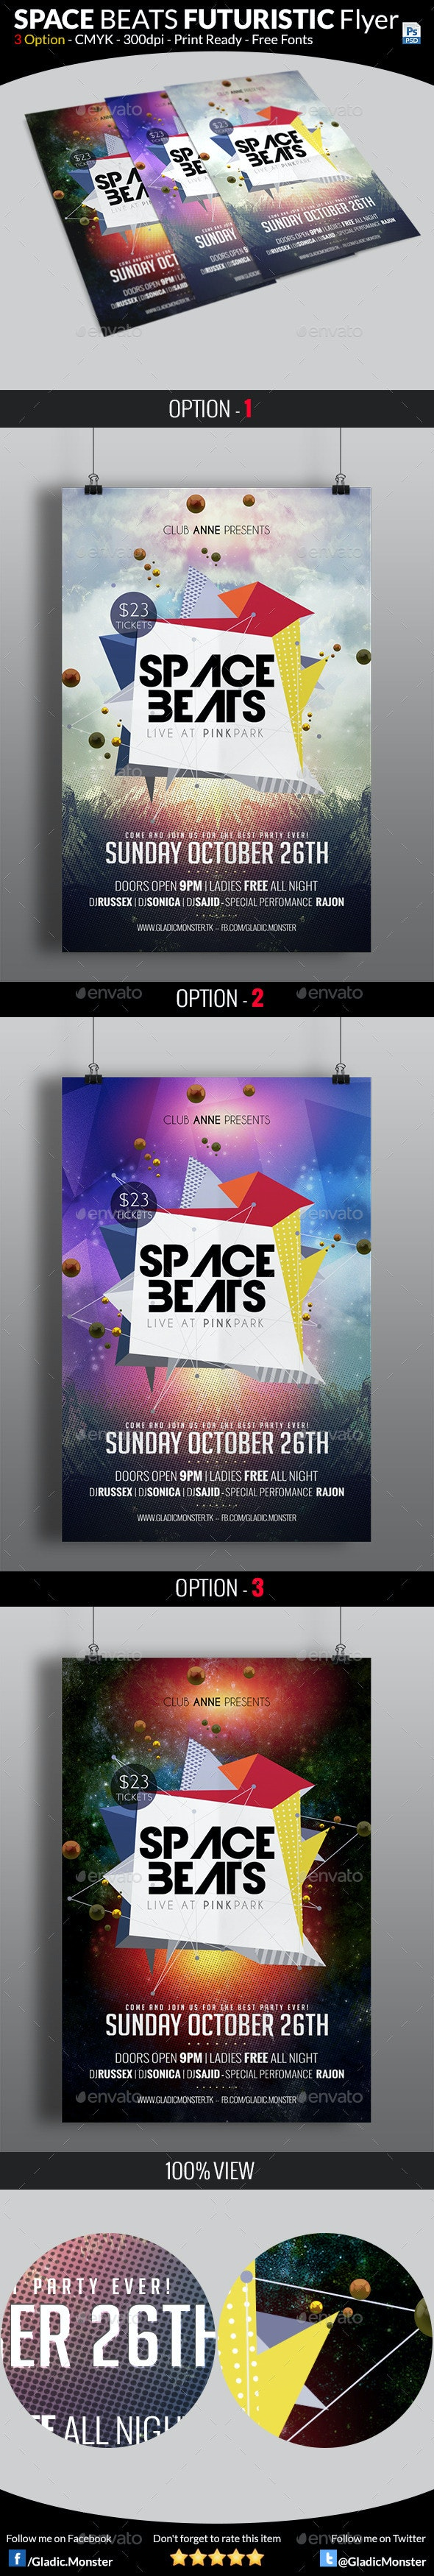 Space Beats Futuristic Flyer - Events Flyers